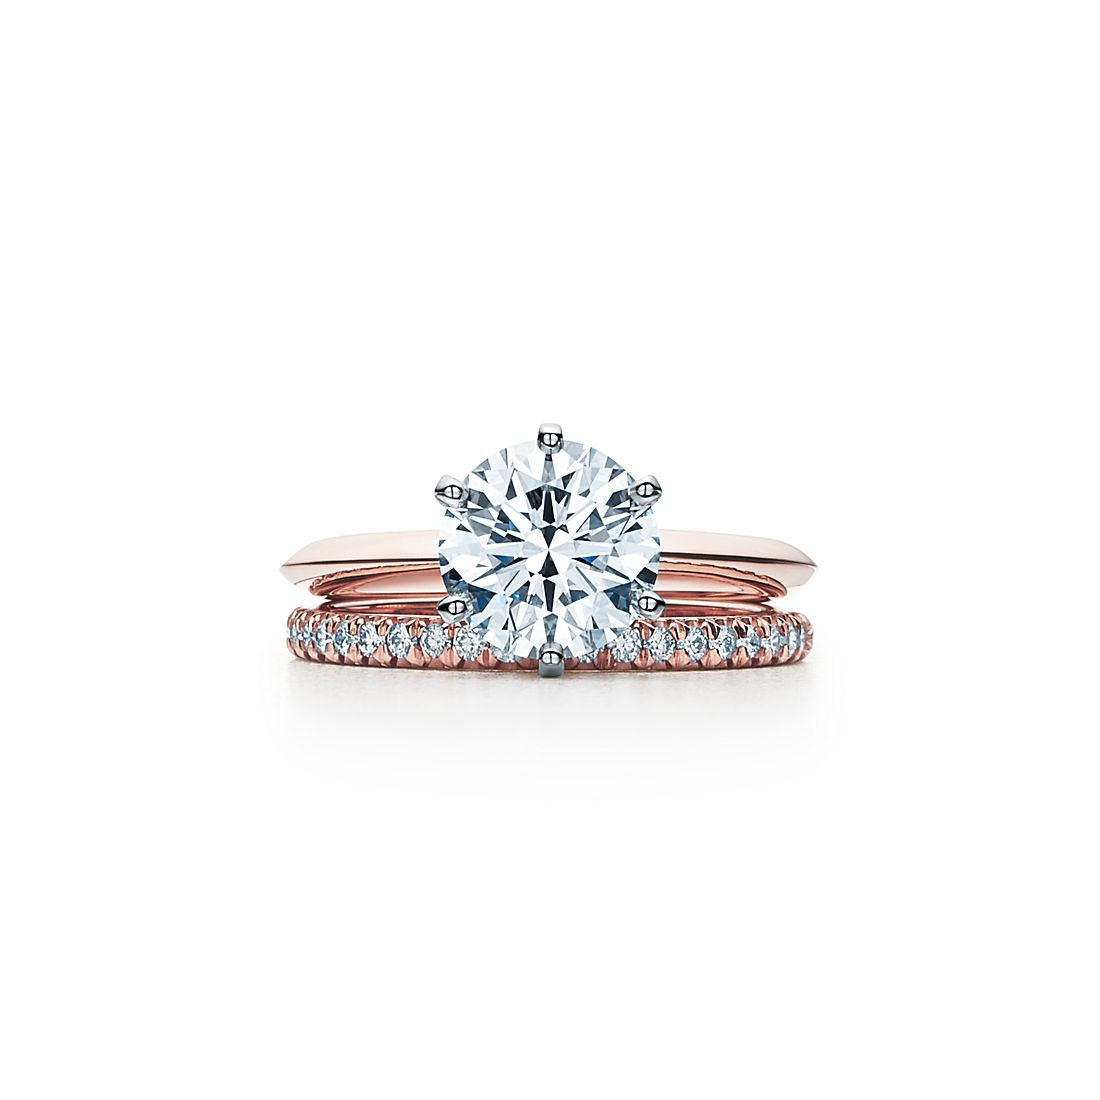 2 04 Ct Shown With Tiffany Solesteband Ring View Wedding Band De S